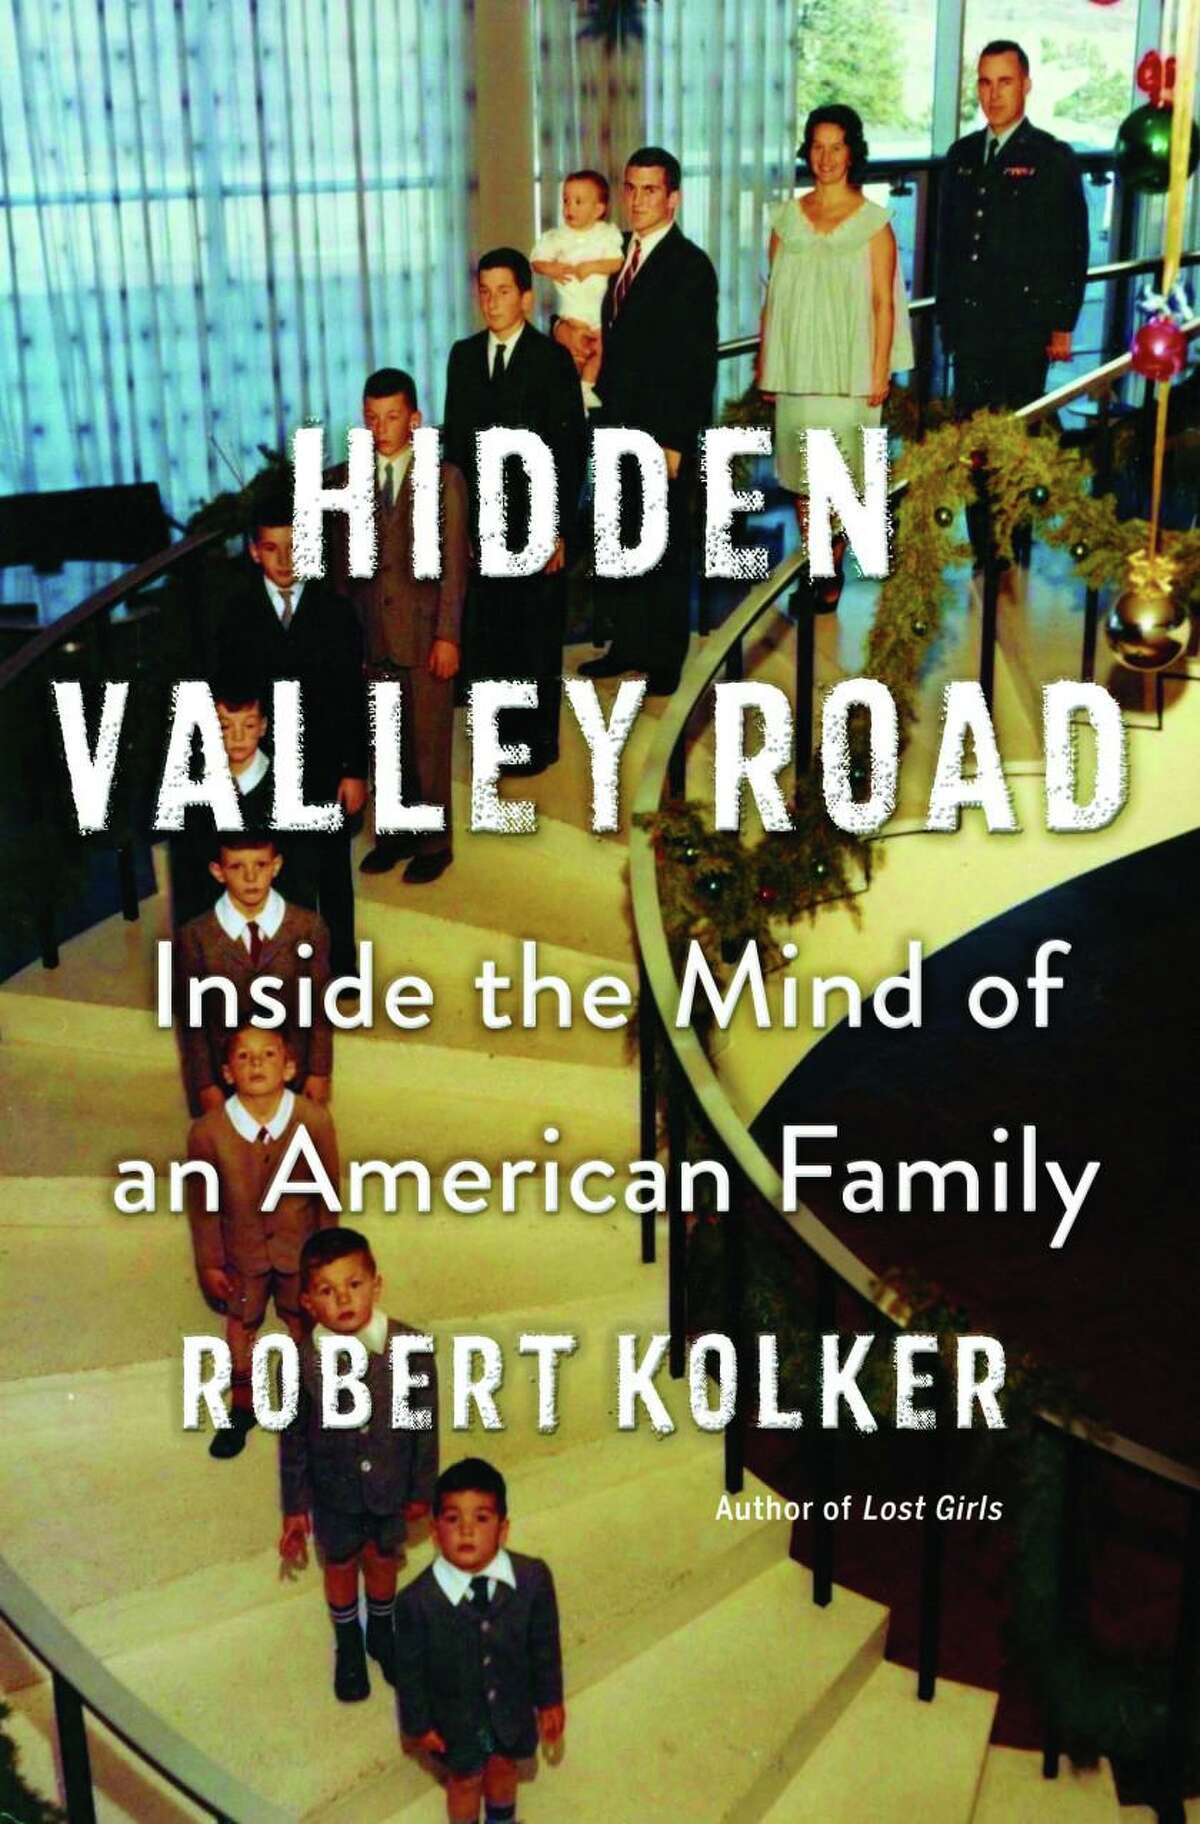 """The New Canaan Library presented a virtual talk by Robert Kolker, an award winning journalist, and the author of the 2013 New York Times bestseller, """"Lost Girls: An Unsolved American Mystery,"""" on Tuesday, May 12."""